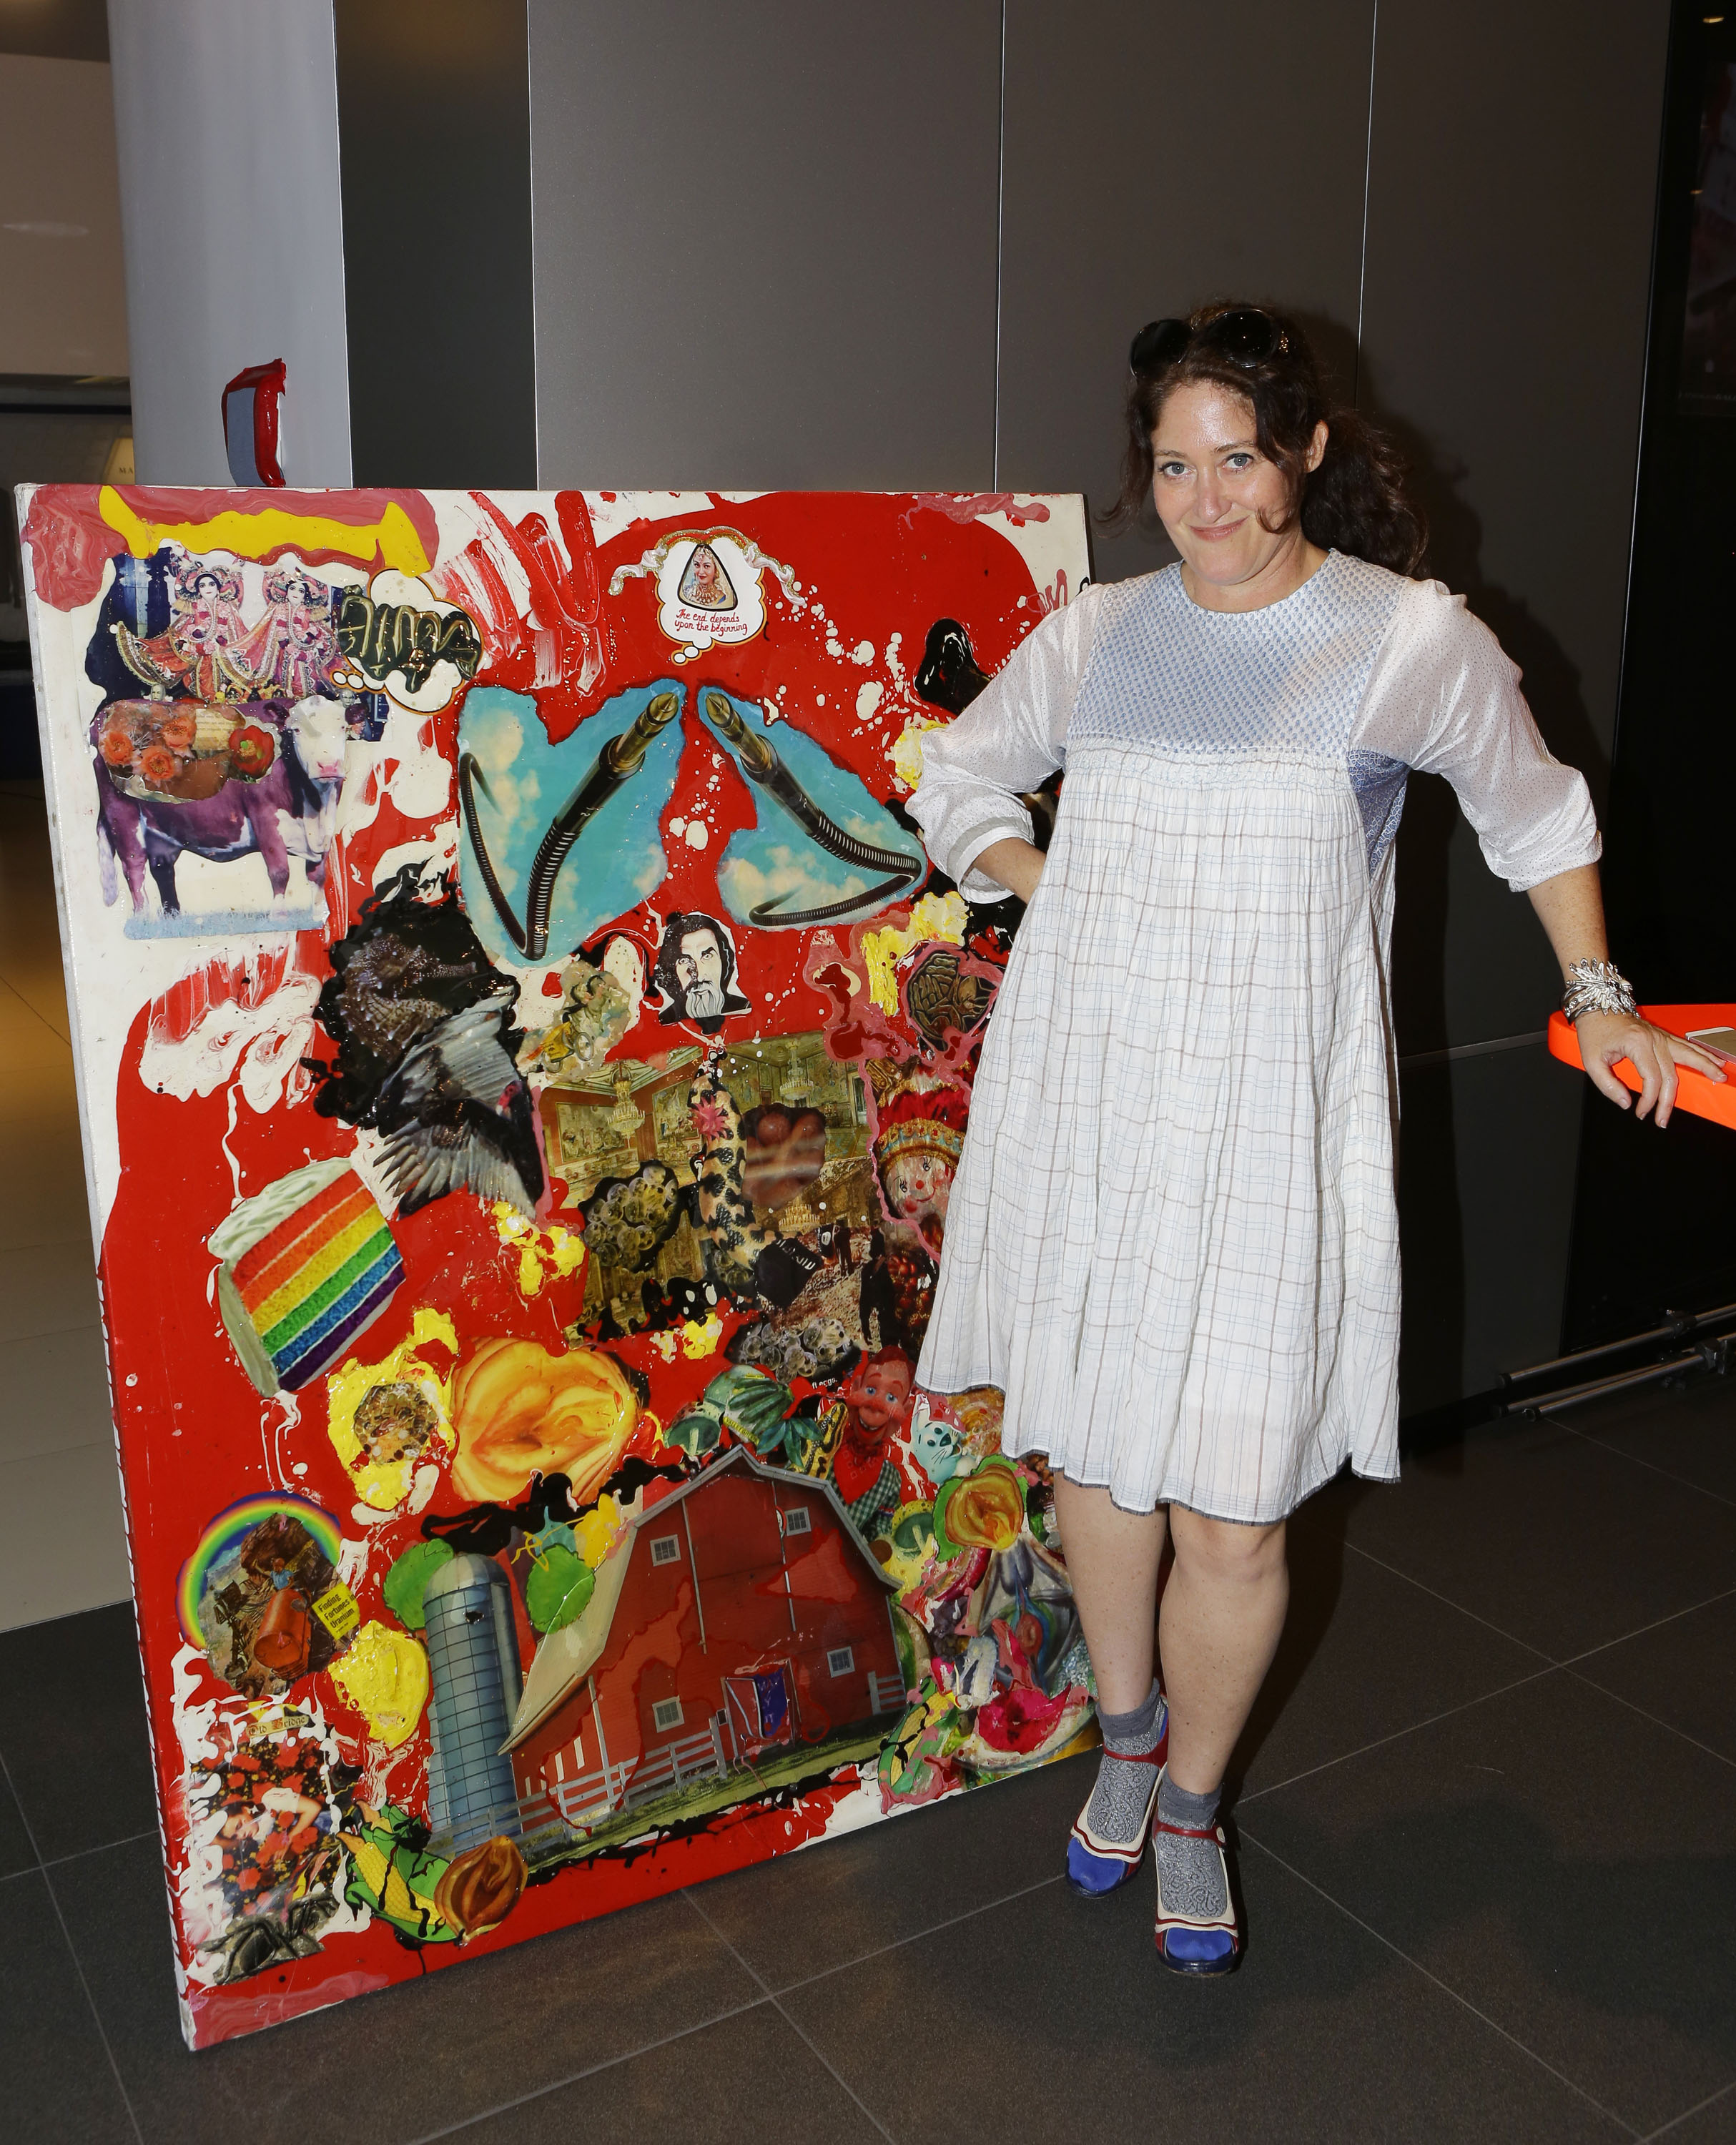 Artist Tracey Keilly (Photo by Tiffany Rose/Getty Images for GBK)